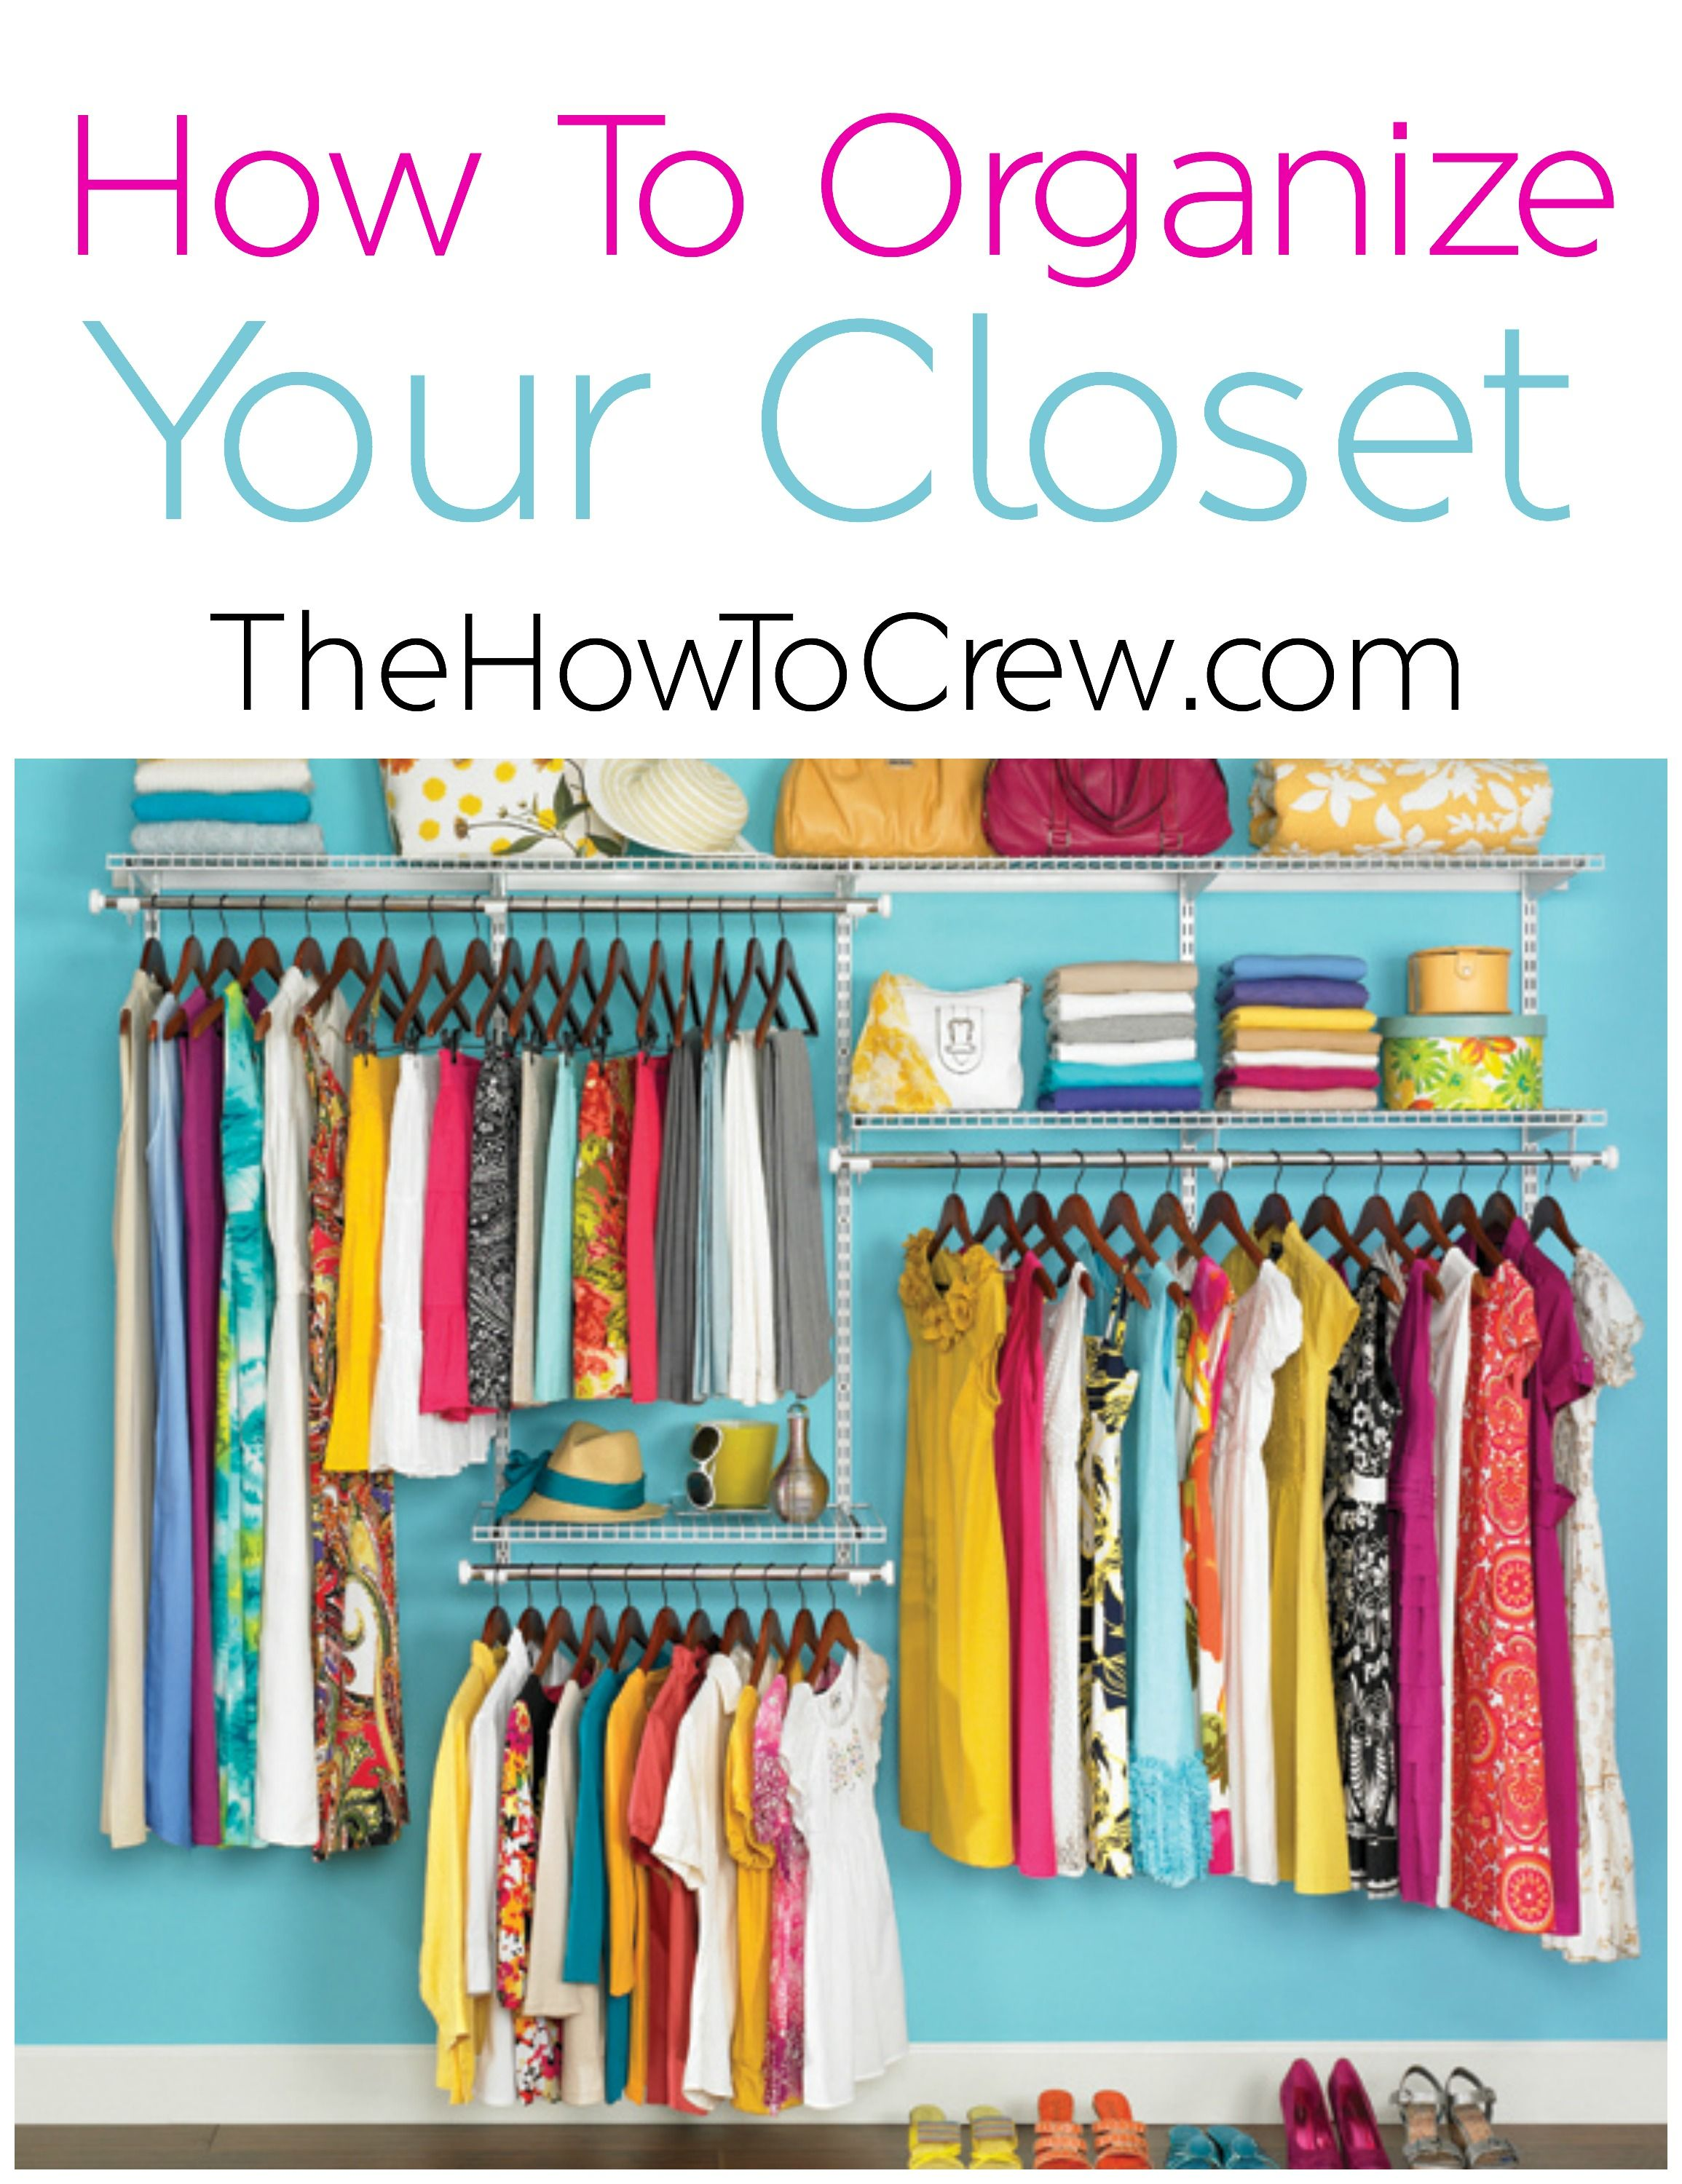 How To Organize Your Closet   10 Of The Best Tips And Tricks On  TheHowToCrew.